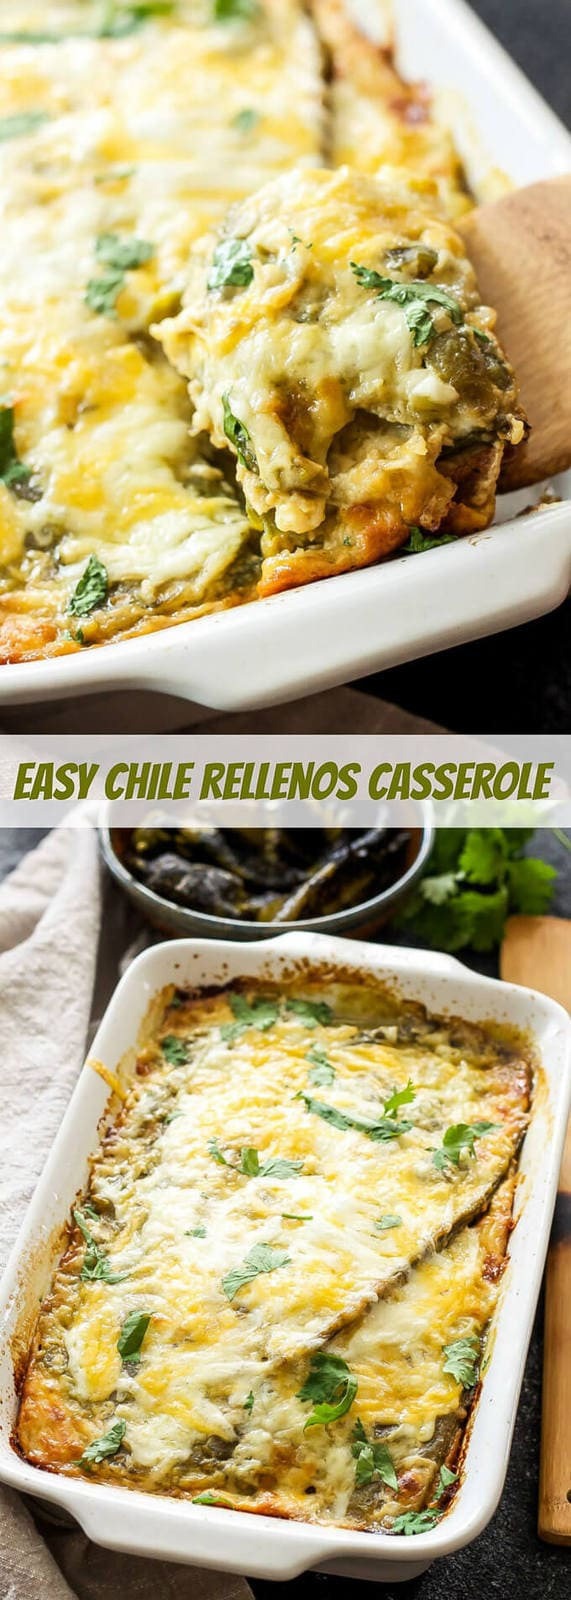 Easy Chile Rellenos Casserole | This quiche-like casserole made up of layers of green chiles and cheese is a meal even the most novice cook can put together! Perfect for dinner or breakfast!